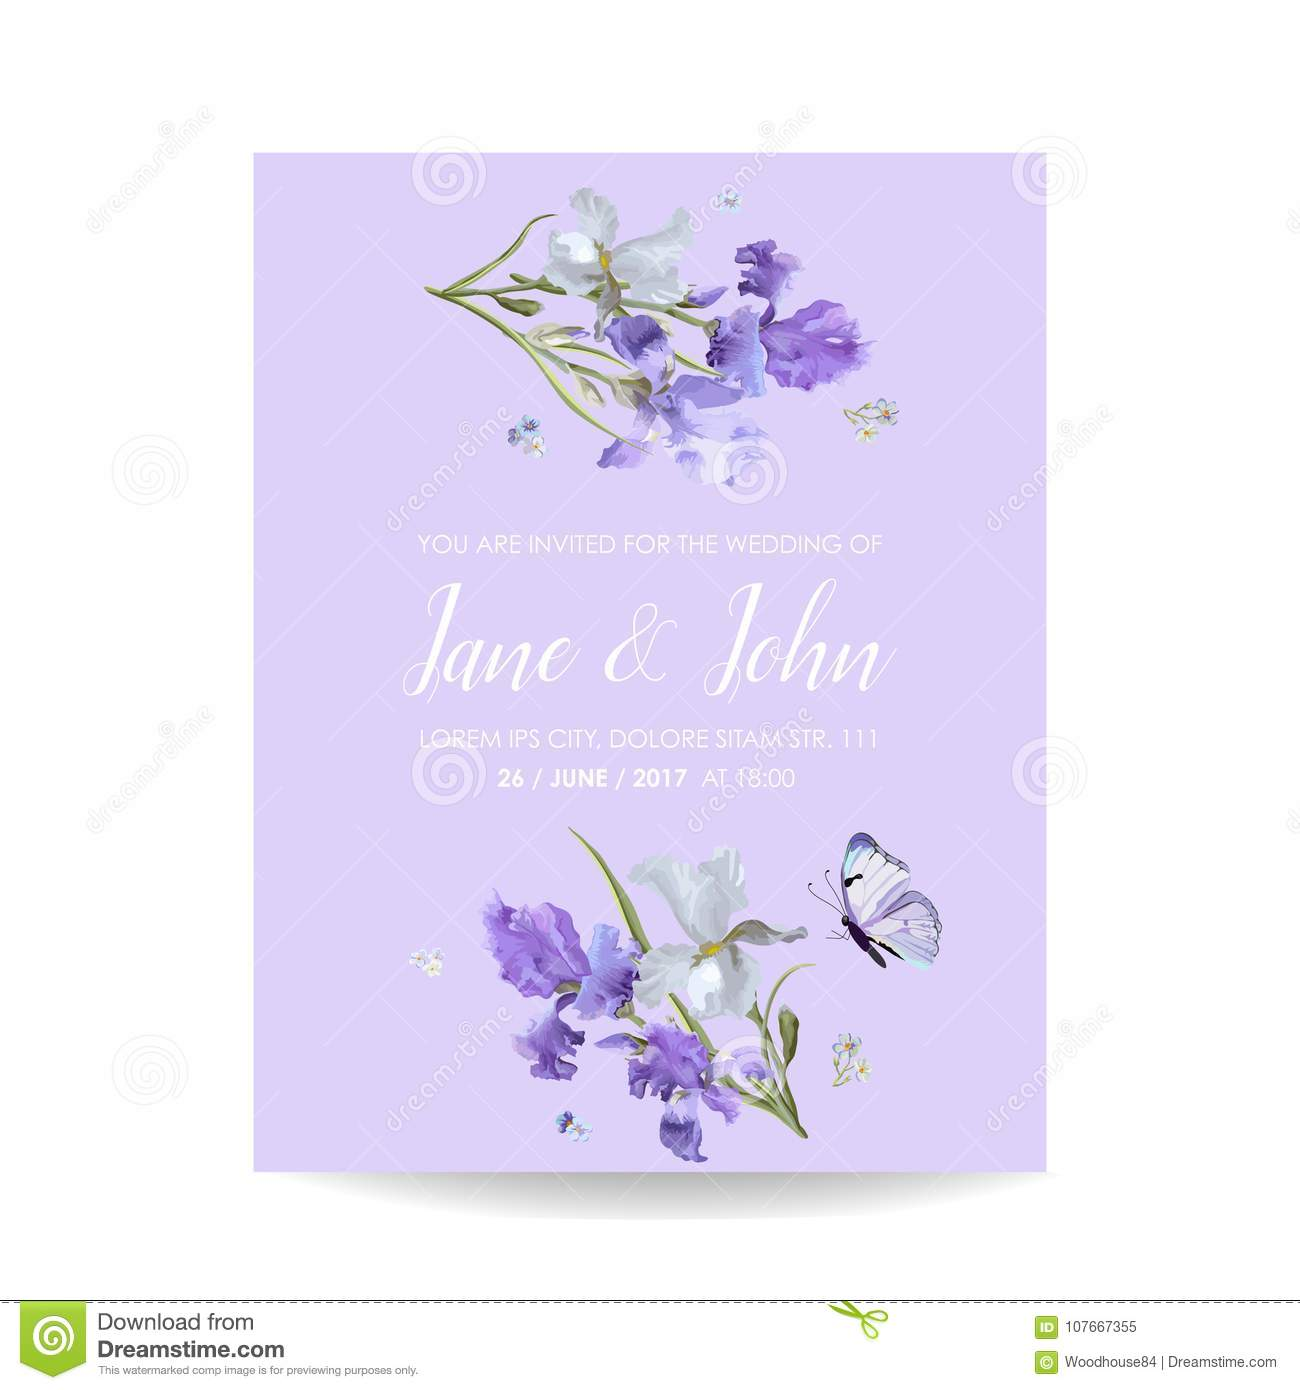 Save The Date Card With Iris Flowers And Butterflies Floral Wedding